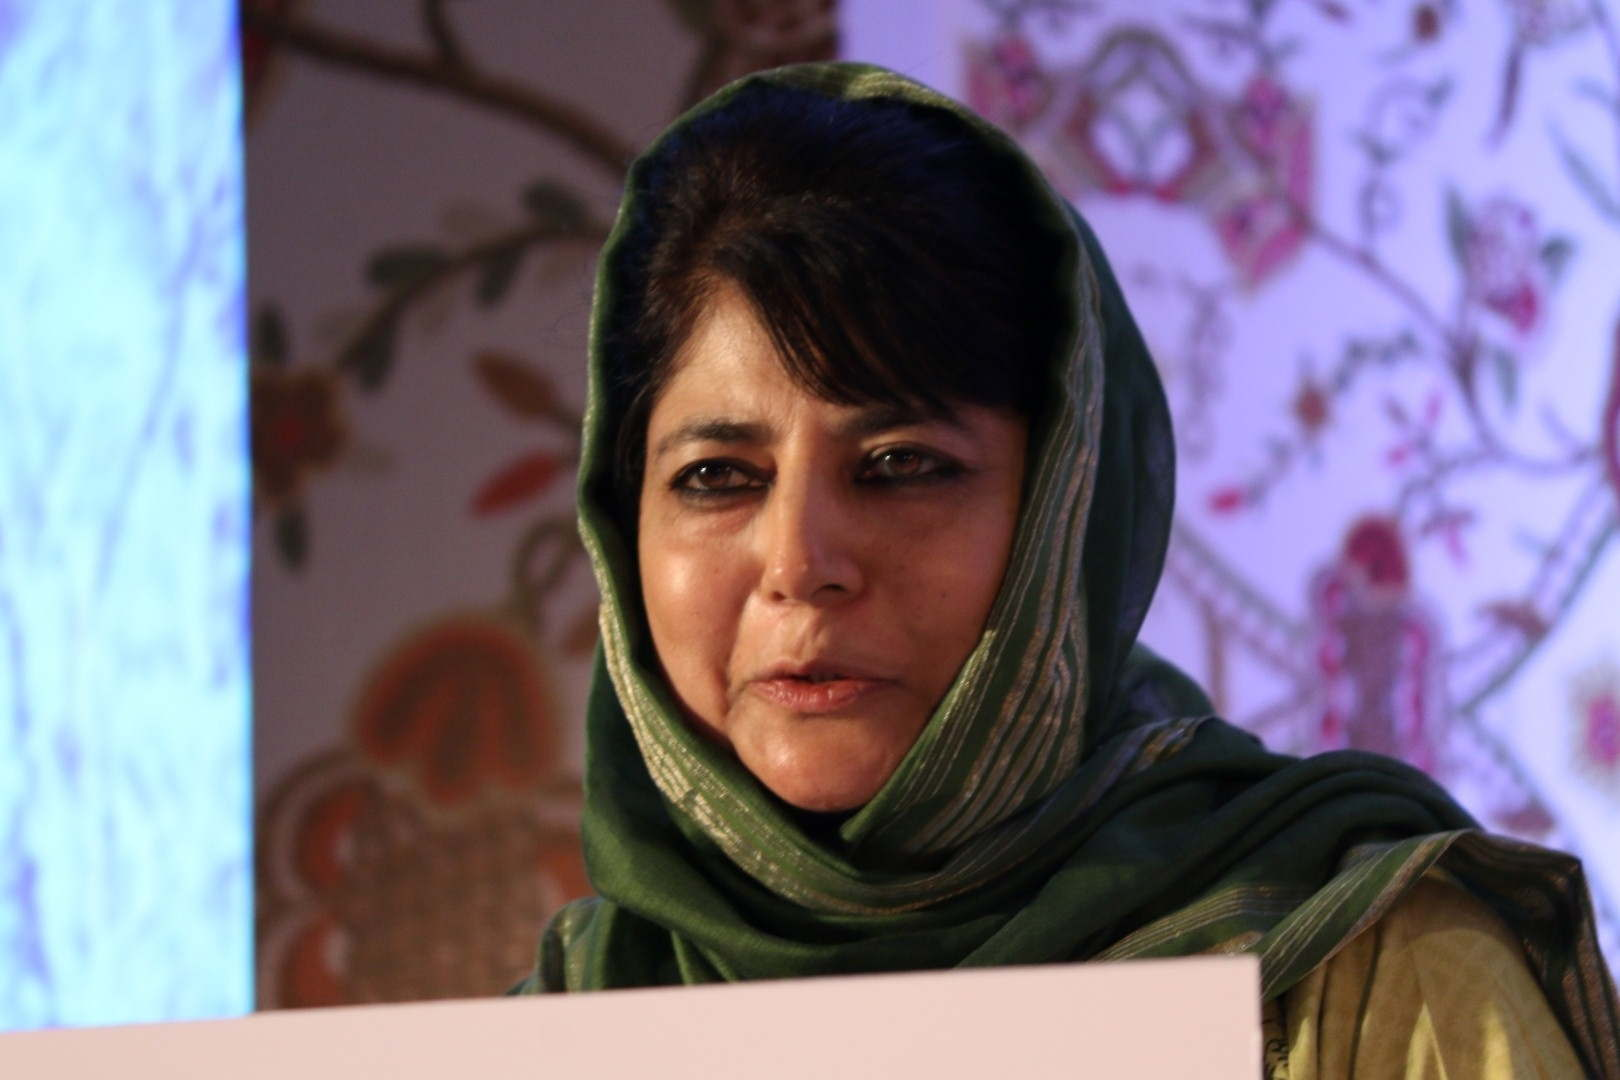 With the National Conference (NC) President and the former CM, Farooq Abdullah, already facing the ED's questioning in the Rs 44 crore Jammu and Kashmir Cricket Association (JKCA) fund scam, Mehbooba is the second former Chief Minister of Jammu and Kashmir to be questioned by the Central agency in a case of alleged money laundering